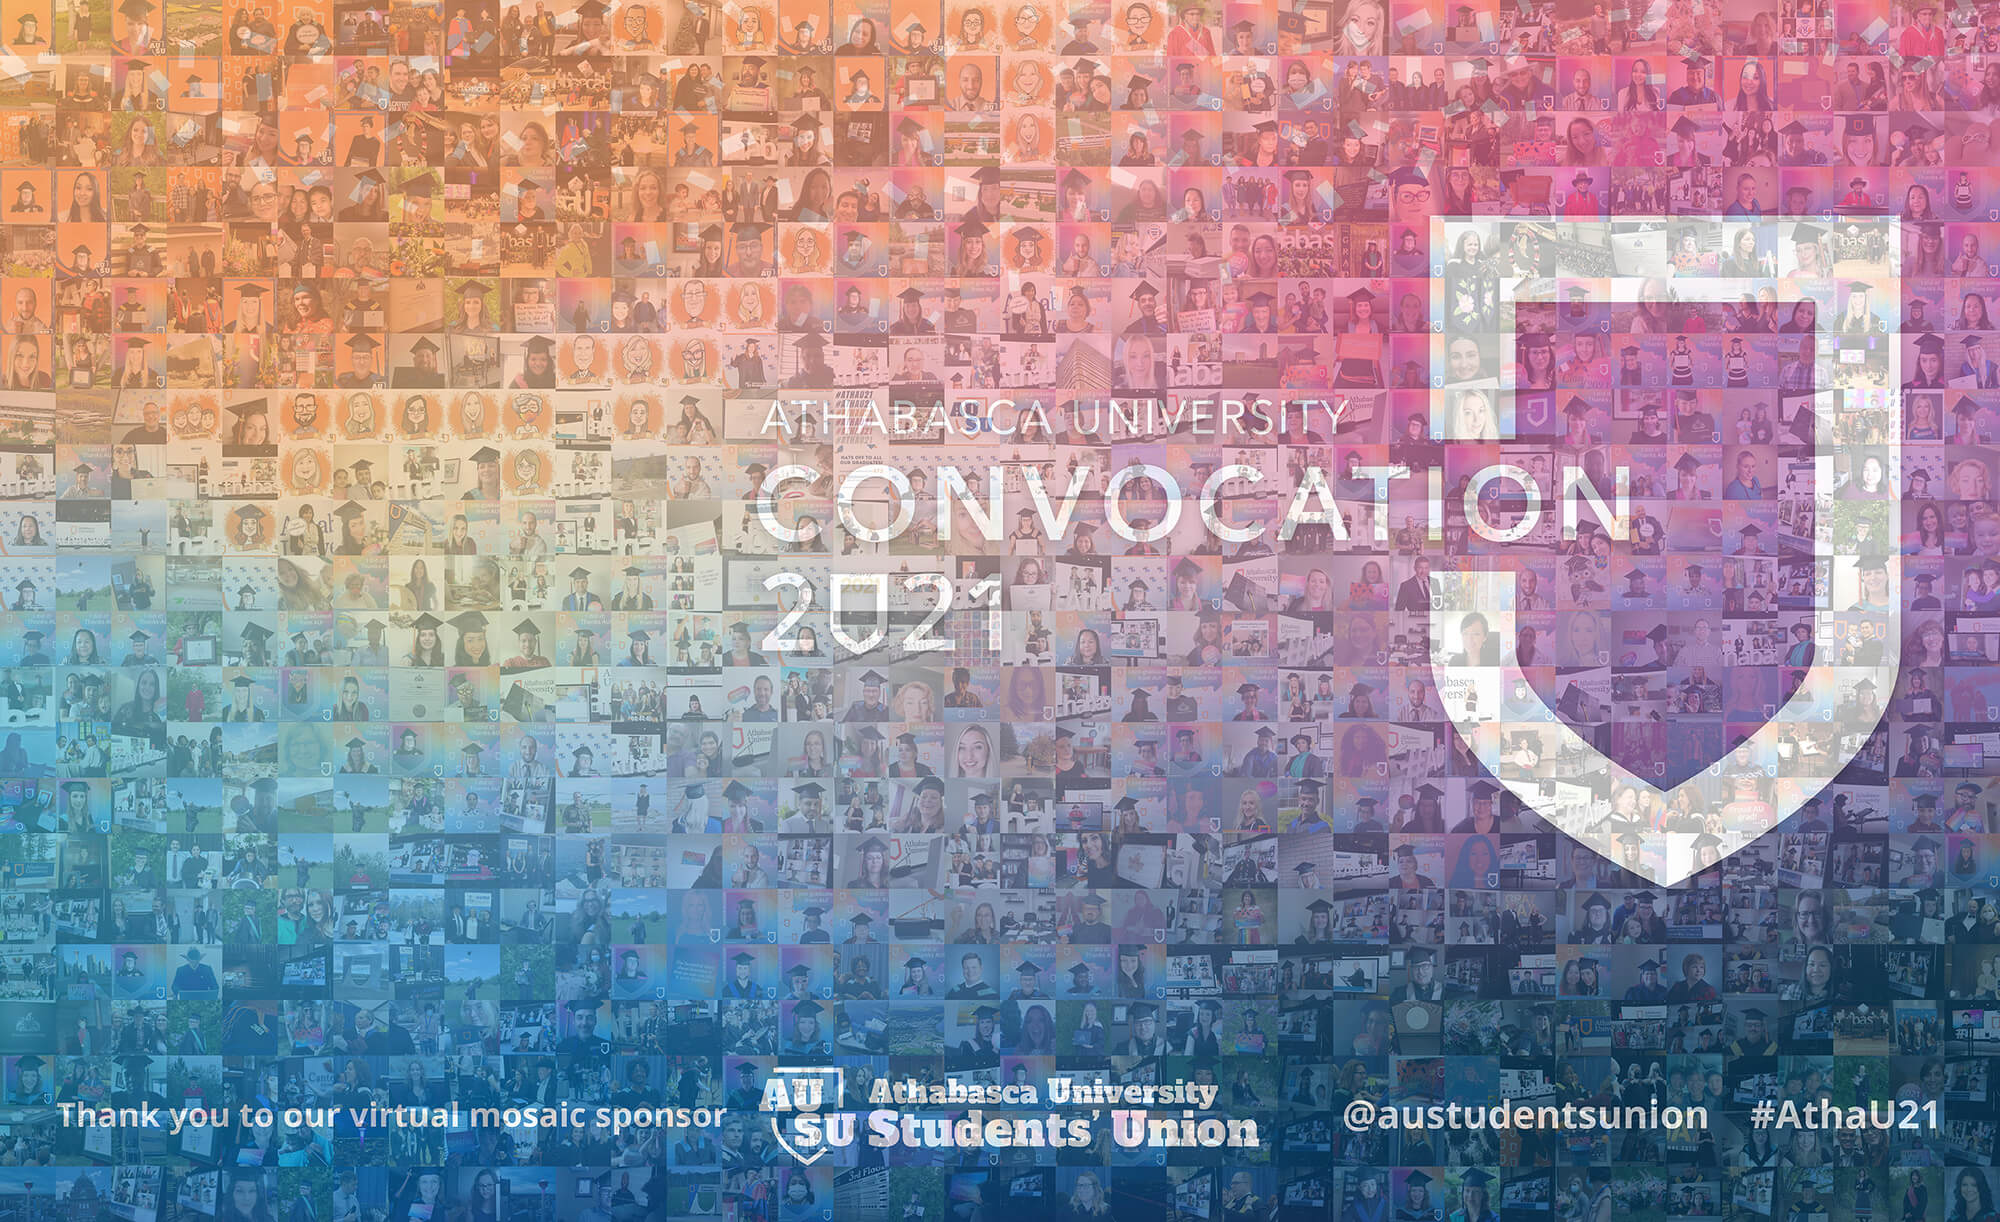 Mosaic image of AU Convocation 2021 made up of smaller pictures of AU's 2021 graduates